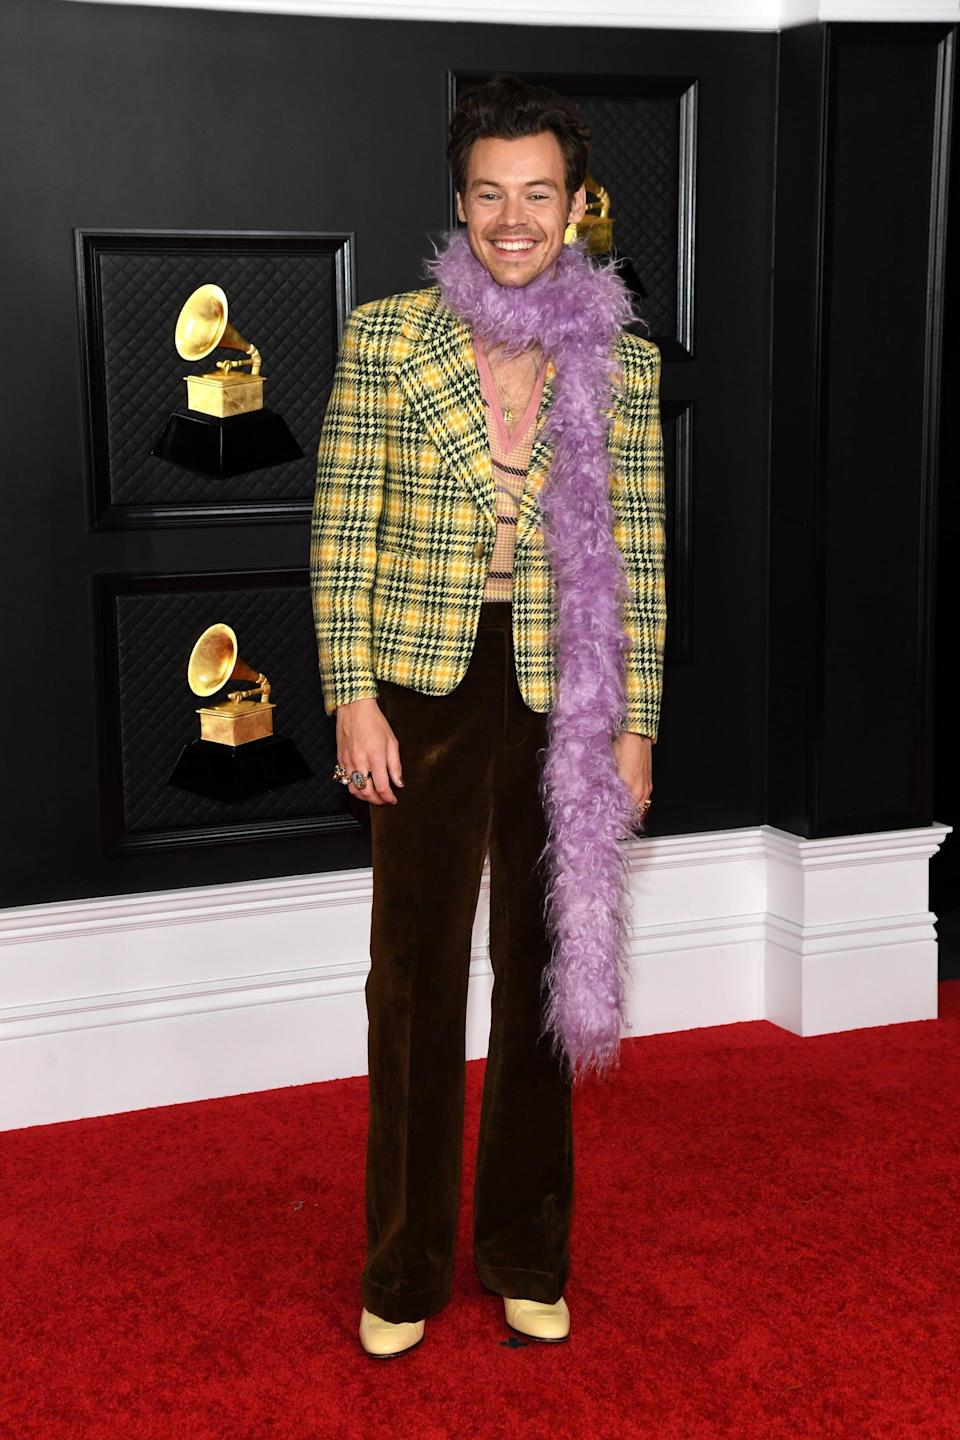 """<p>Psh, you didn't think we'd leave out this Gucci look, now did you? After lighting up the 2021 Grammys stage in <a href=""""https://www.popsugar.com/fashion/harry-styles-grammys-performance-outfit-2021-pictures-48216019"""" class=""""link rapid-noclick-resp"""" rel=""""nofollow noopener"""" target=""""_blank"""" data-ylk=""""slk:an all-leather ensemble"""">an all-leather ensemble</a>, Harry changed into this chic Cher Horowitz-inspired look consisting of a yellow houndstooth blazer, brown velvet pants, a purple fuzzy boa, and a pink plaid sweater vest with a deep-V neckline. Oh, and let's not forget about <a href=""""https://www.popsugar.com/fashion/harry-styles-banana-necklace-2021-grammys-48217742/"""" class=""""link rapid-noclick-resp"""" rel=""""nofollow noopener"""" target=""""_blank"""" data-ylk=""""slk:that risqué banana necklace of his"""">that risqué banana necklace of his</a> either.</p>"""